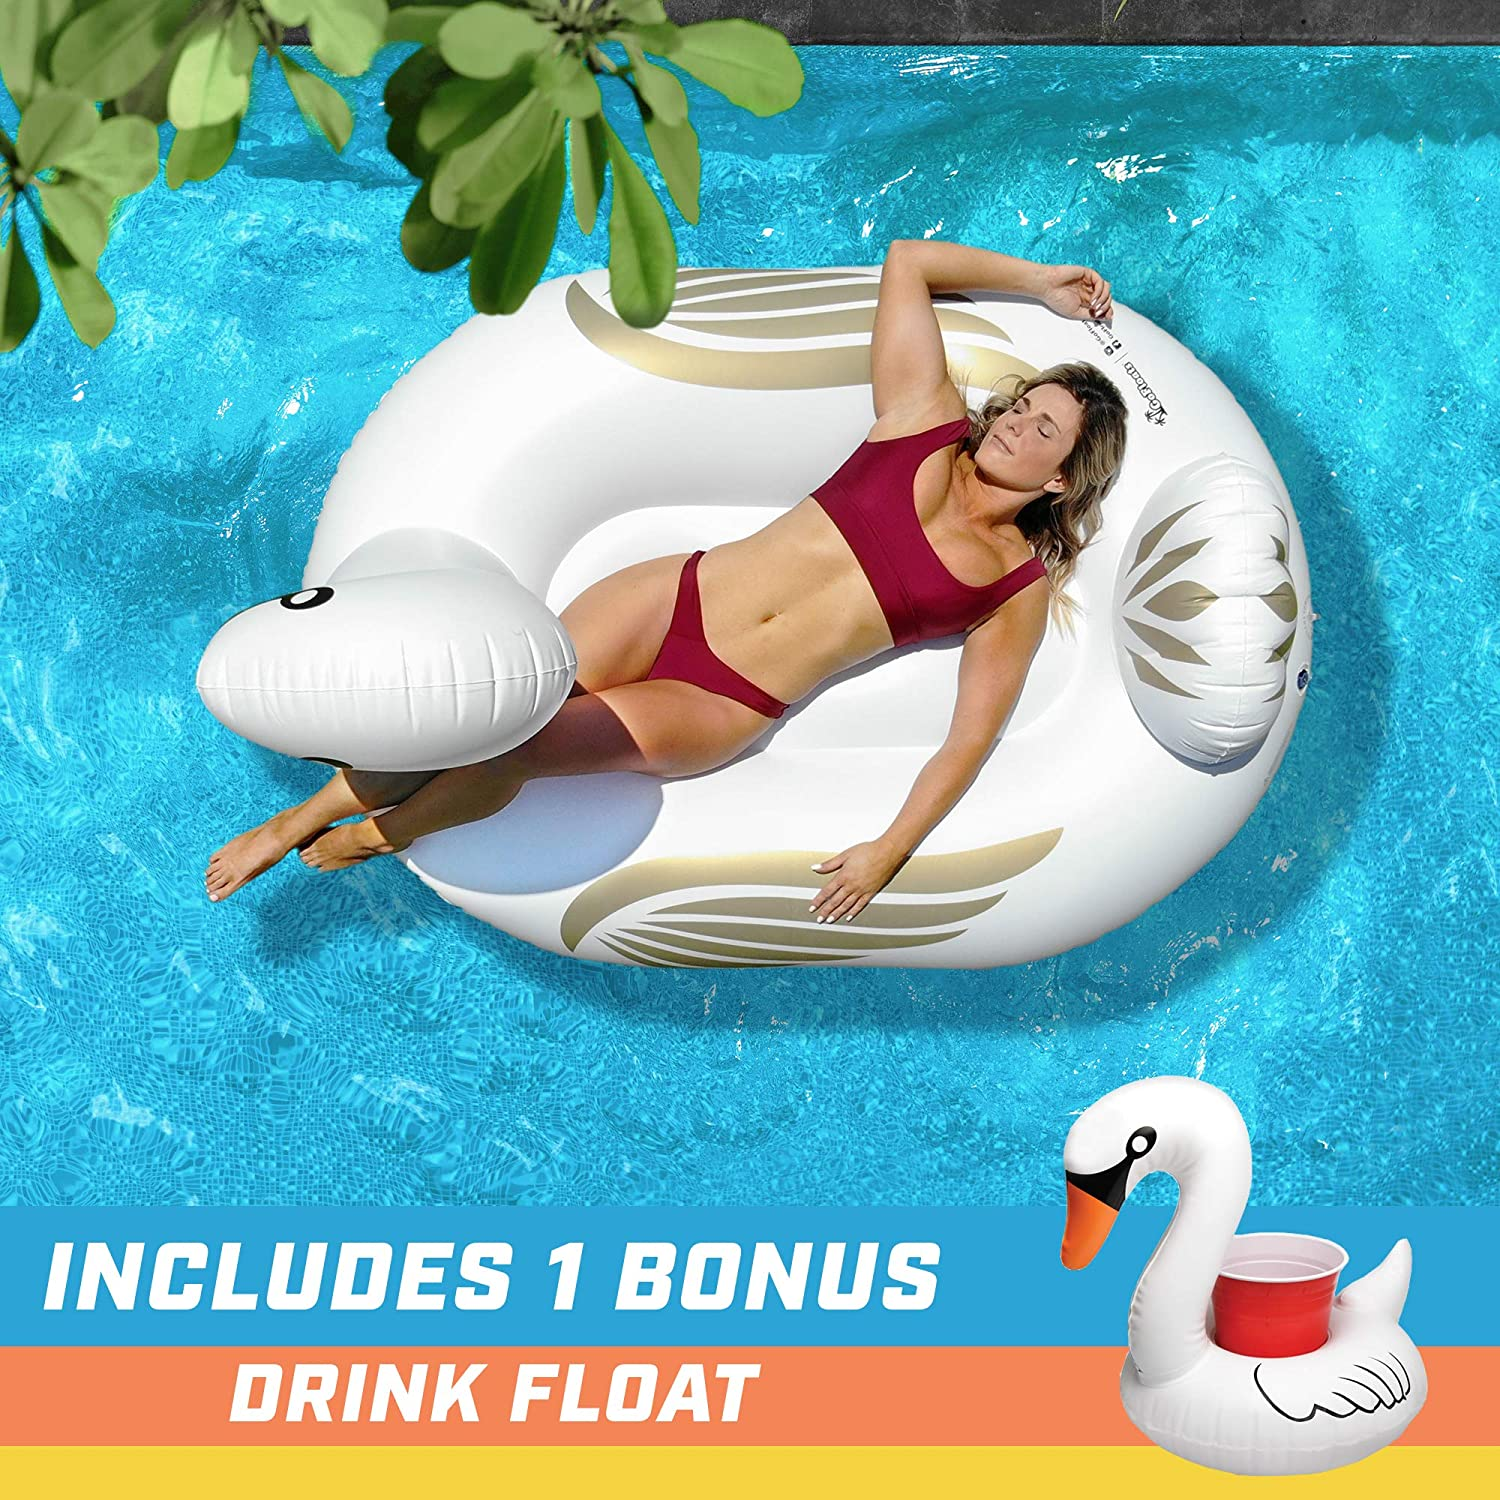 Amazon.com: GoFloats Giant Inflatable Swan Pool Float | Raft Includes Bonus Swan Drink Float | Fun for Kids and Adults: Sports & Outdoors